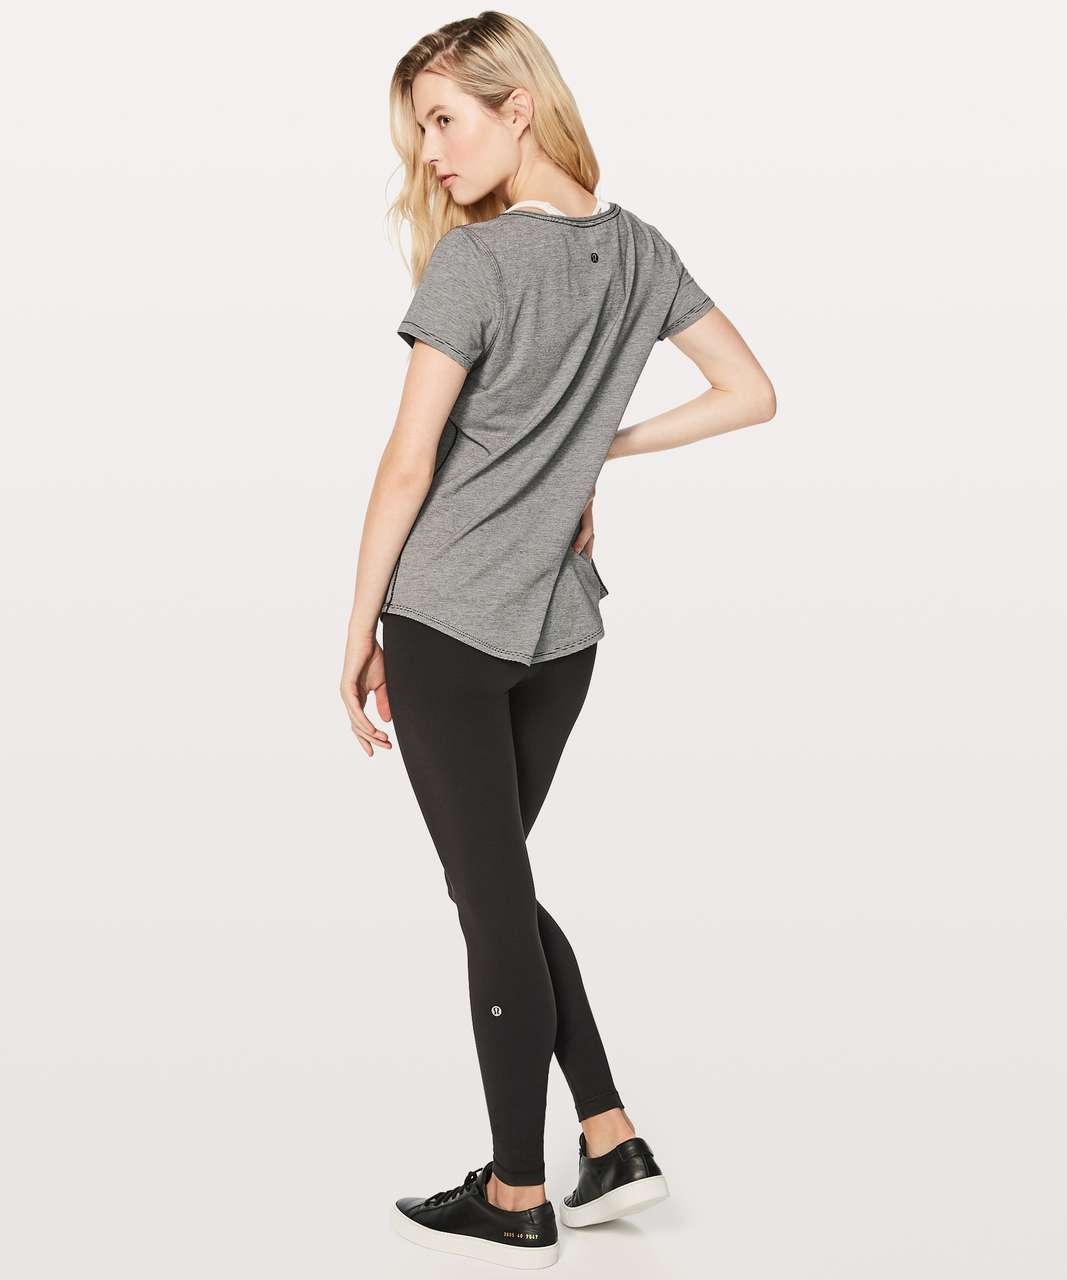 Lululemon Love Crew III - Wee Stripe Black White